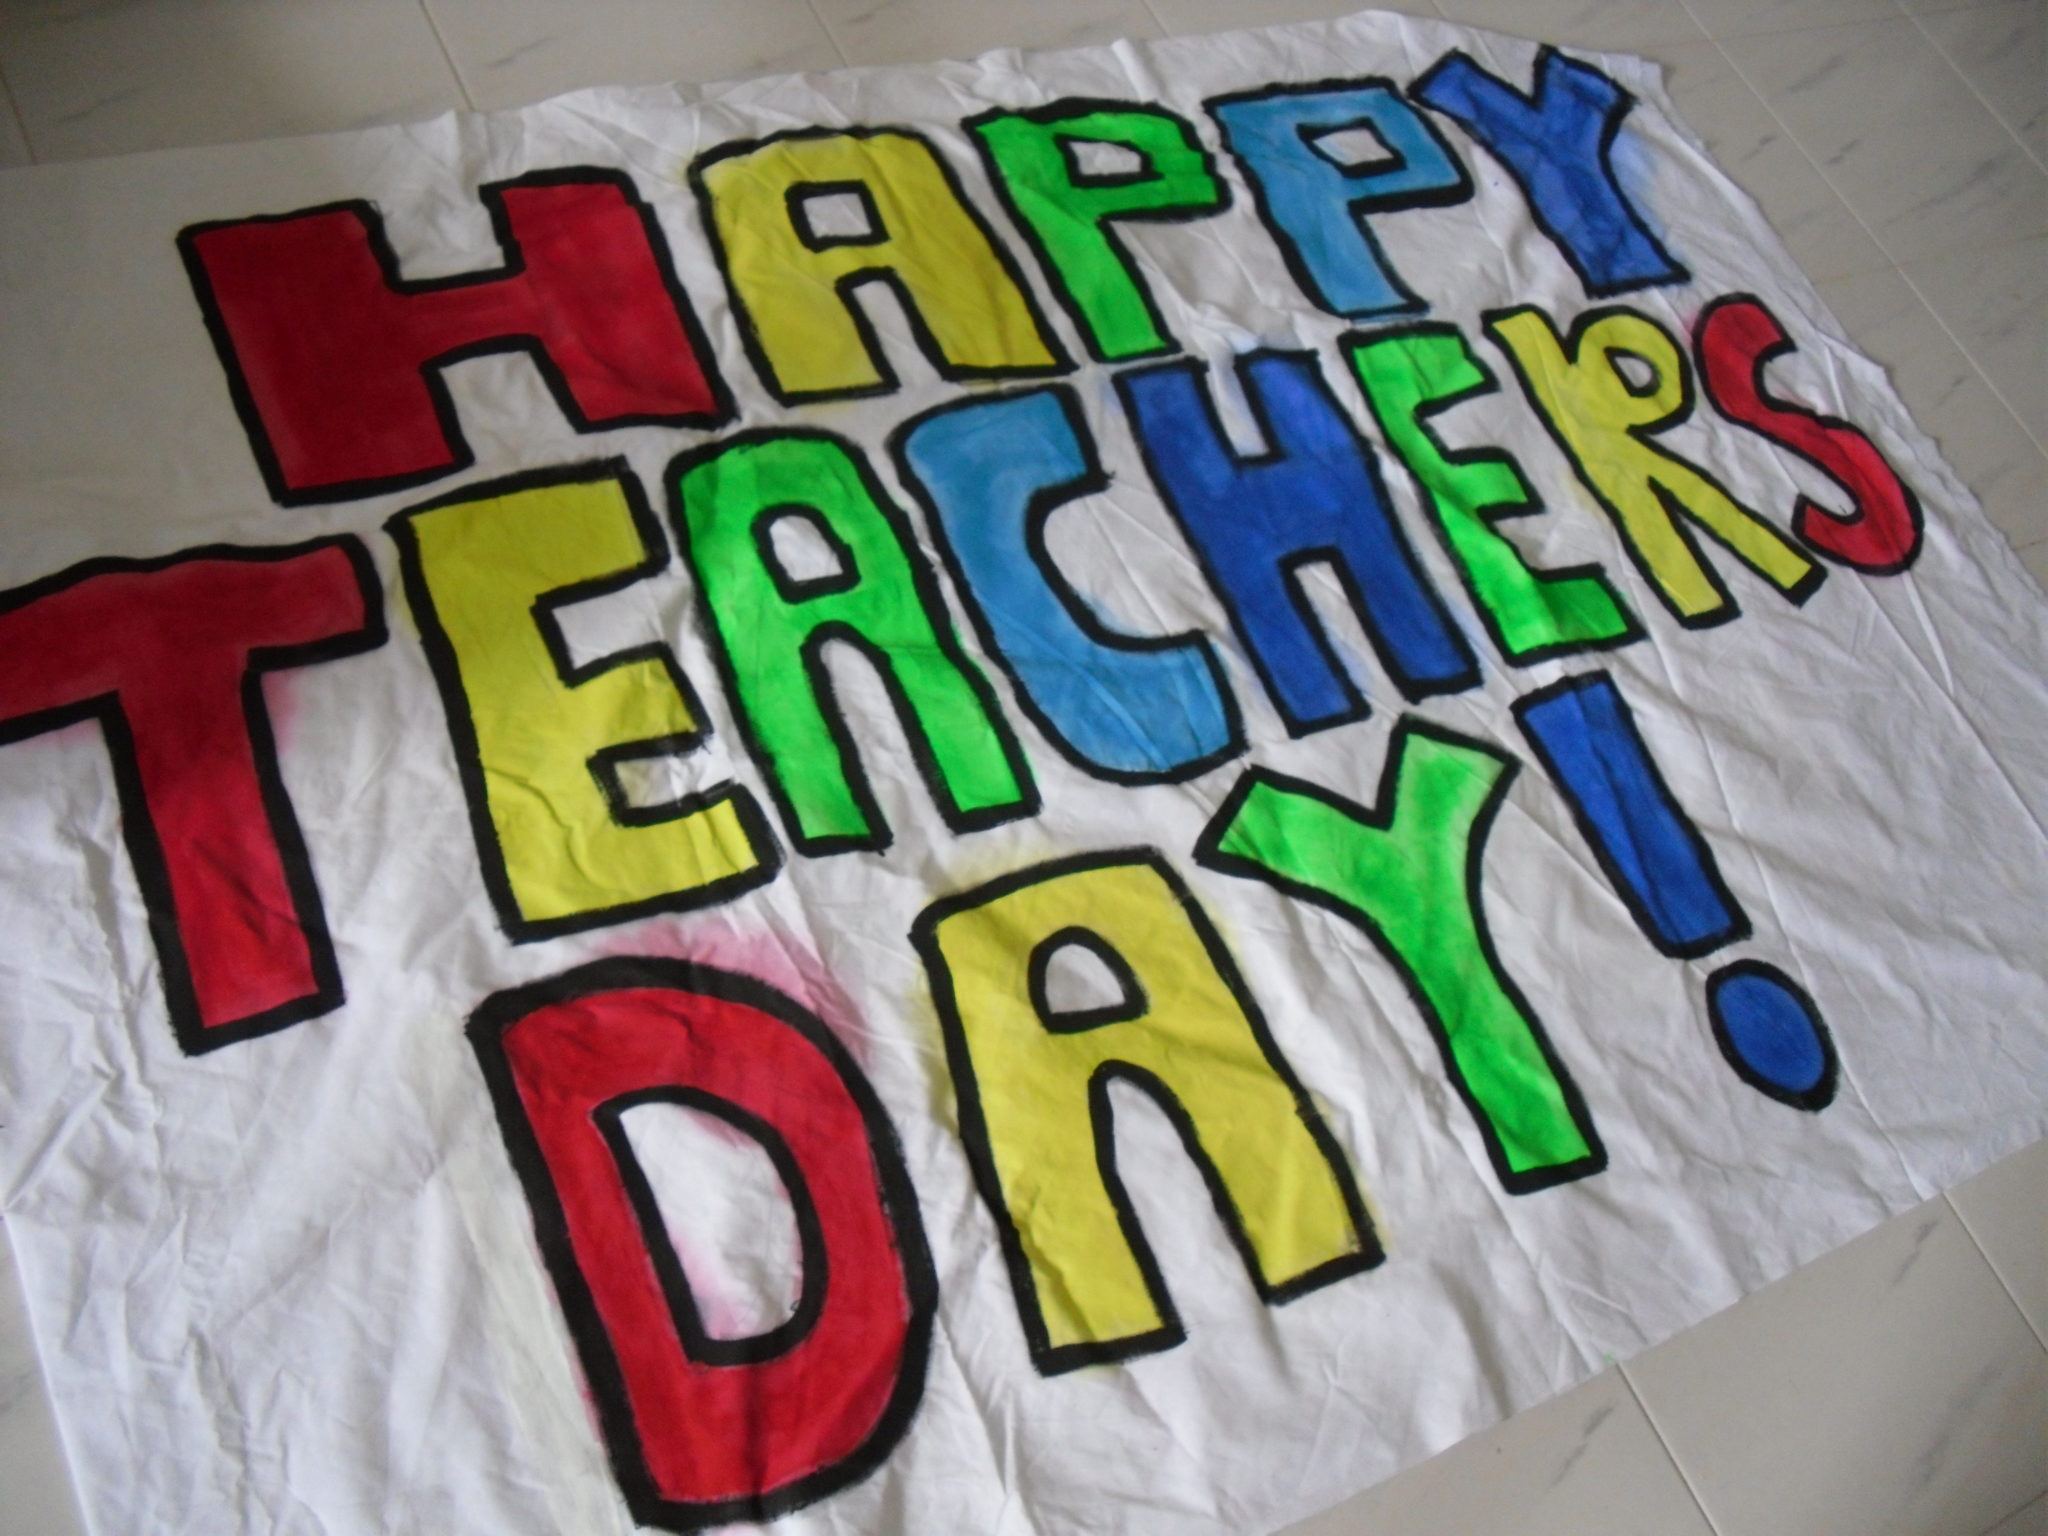 Top 10 ideas to celebrate teachers day 2017 unusual gifts happy teachers day altavistaventures Choice Image